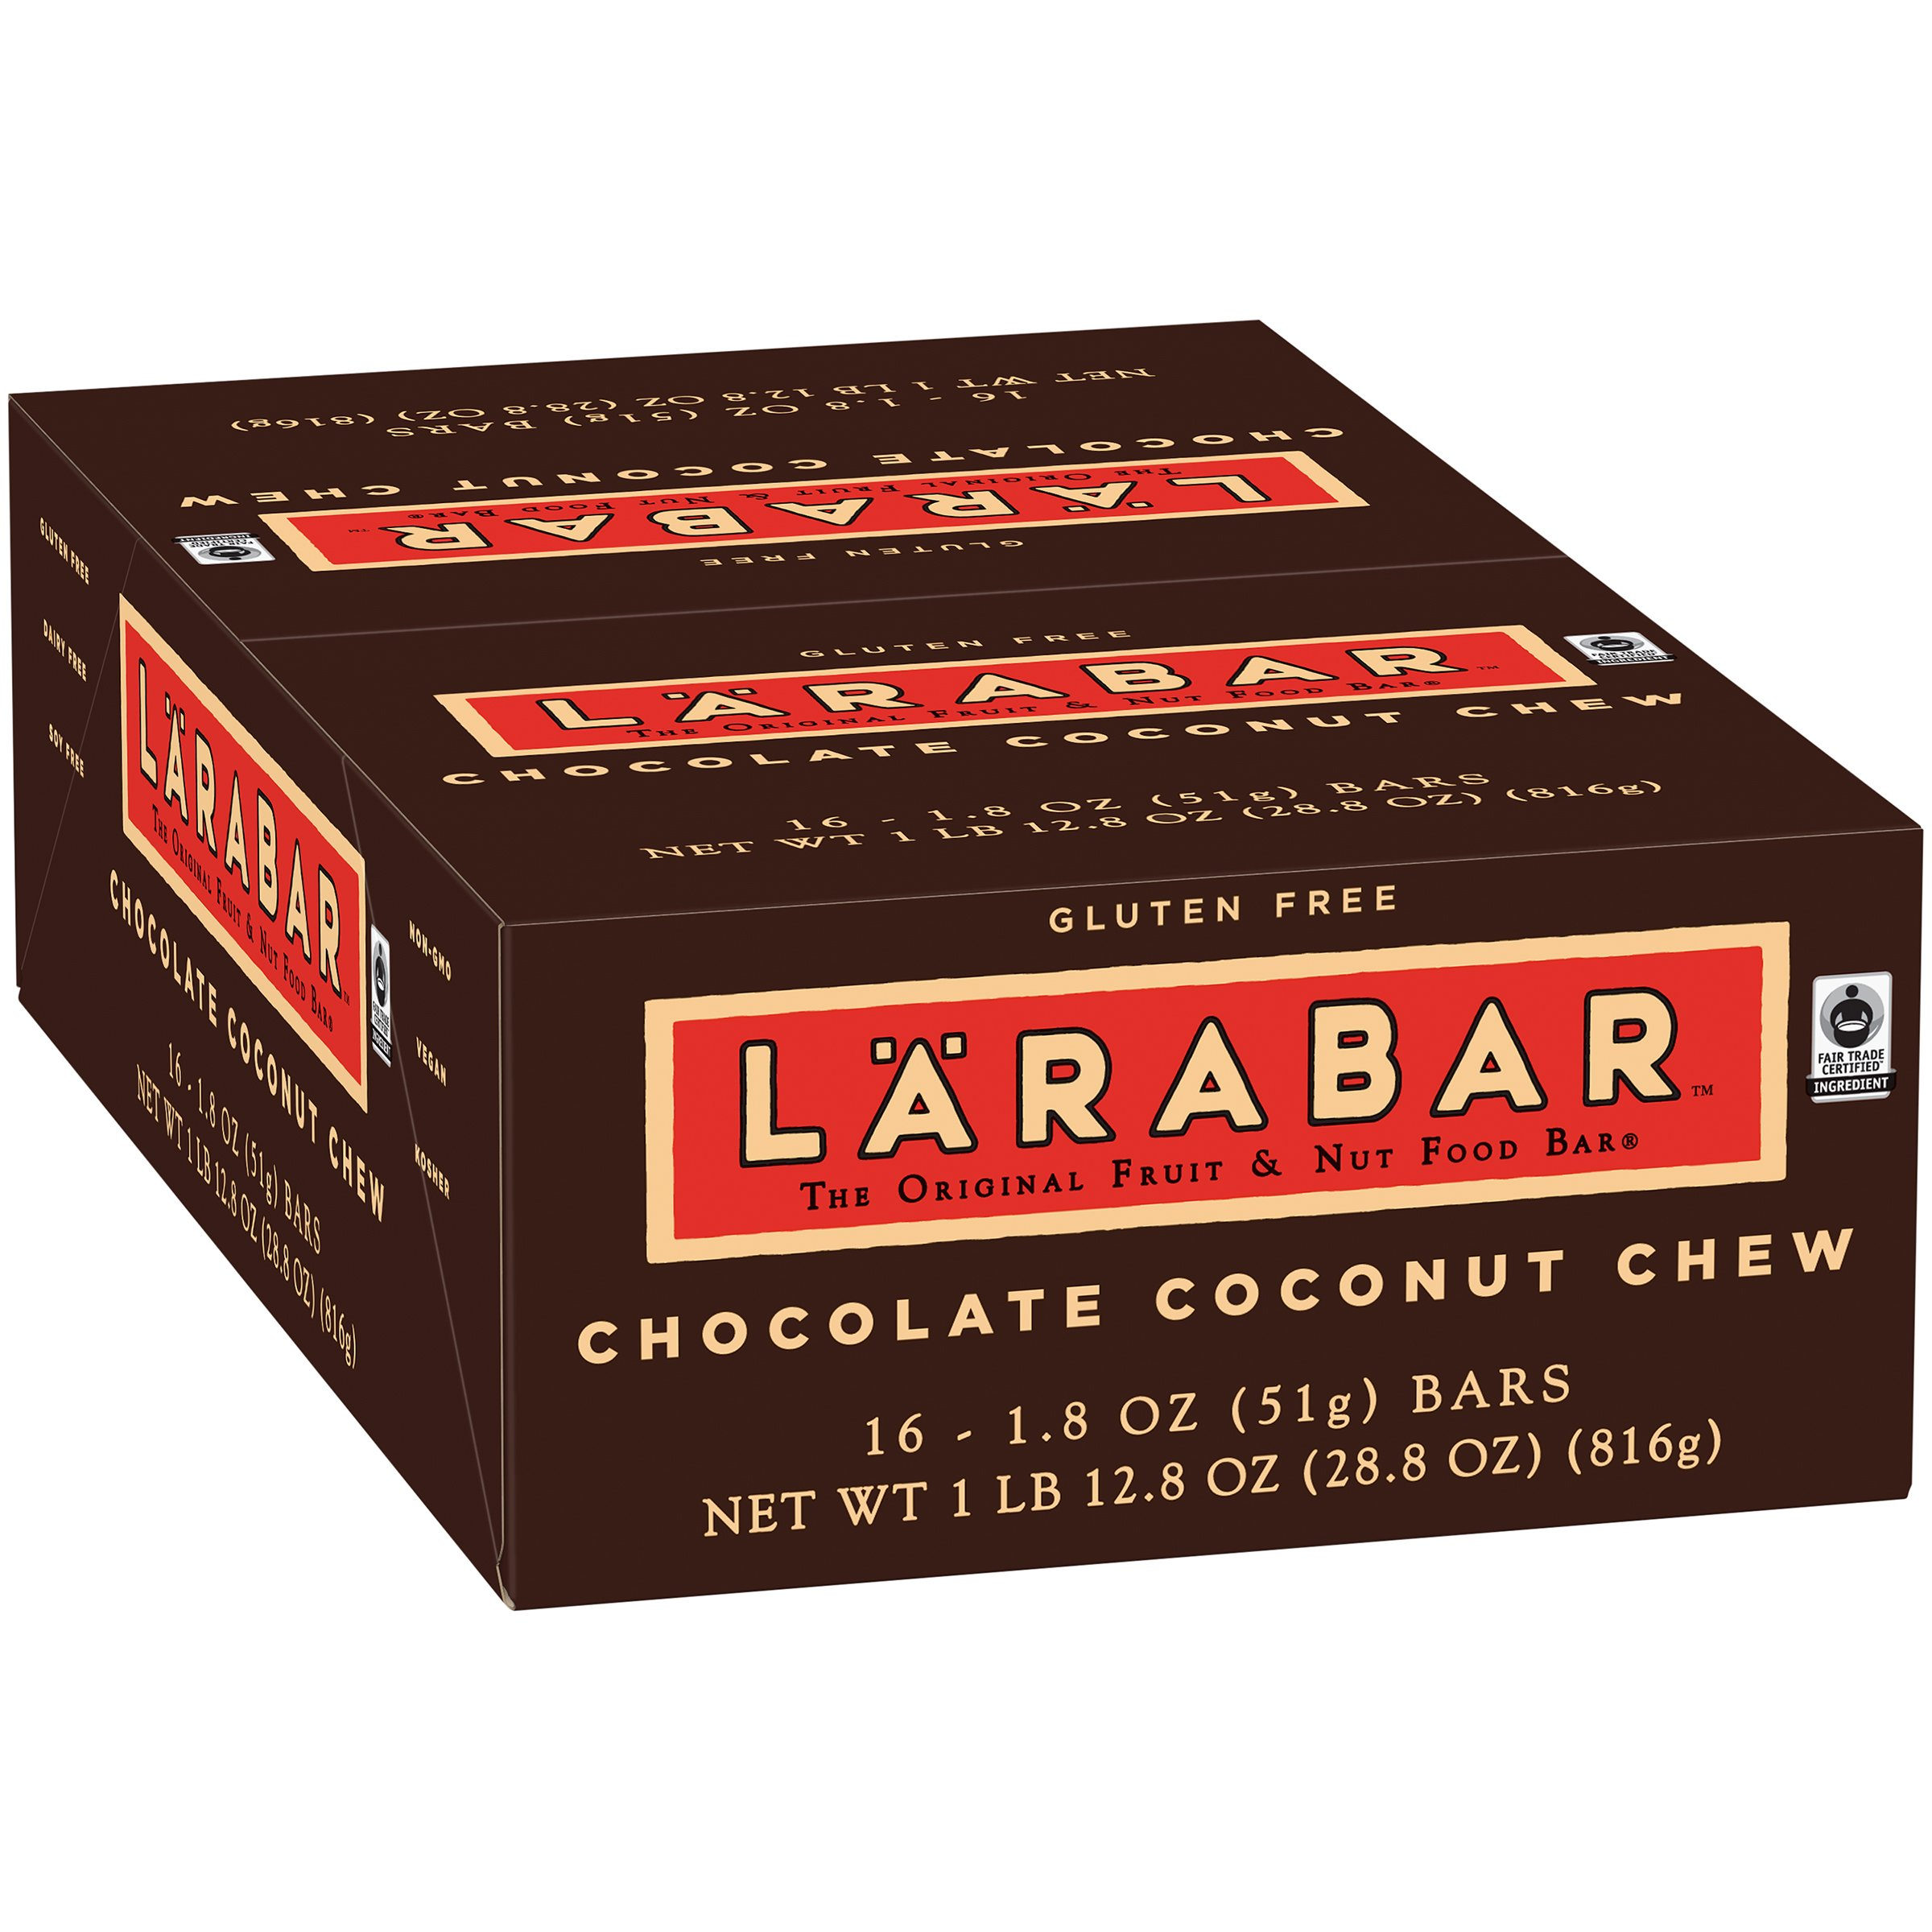 Larabar Gluten Free Bar, Chocolate Coconut Chew, 1.8 oz Bars (16 Count)